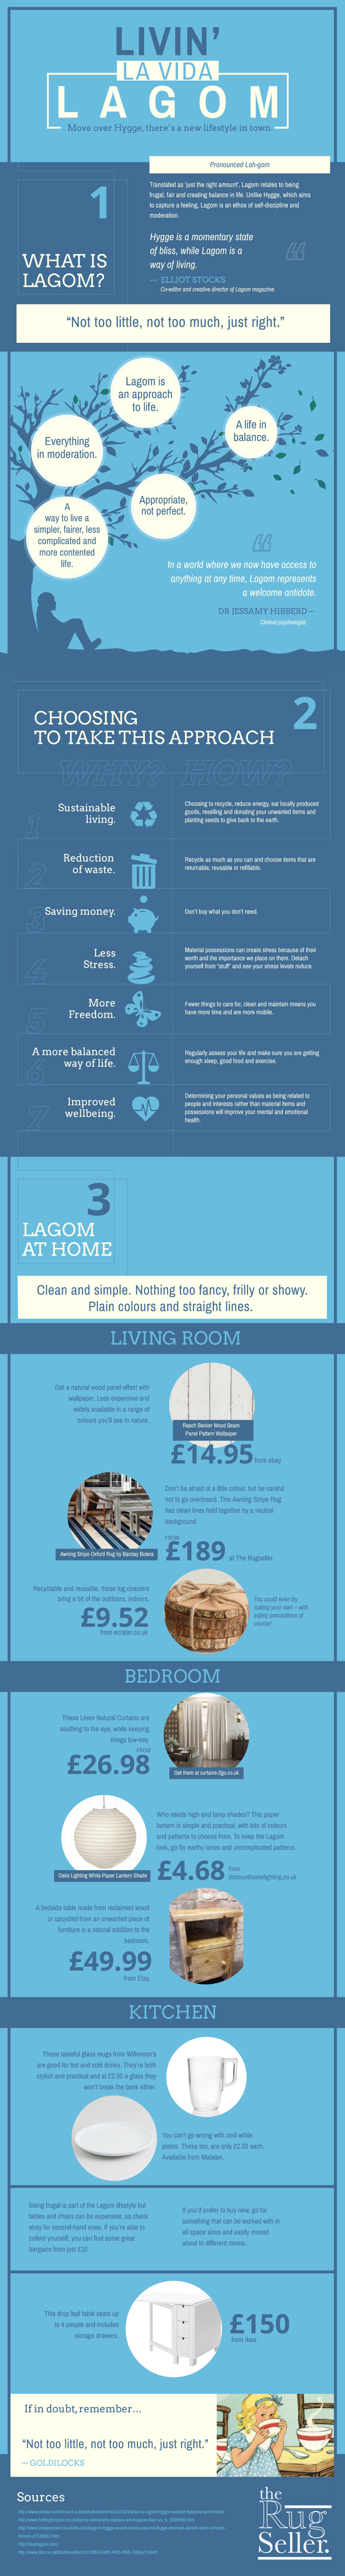 Discover how to Live the Lagom Lifestyle by The Rug Seller